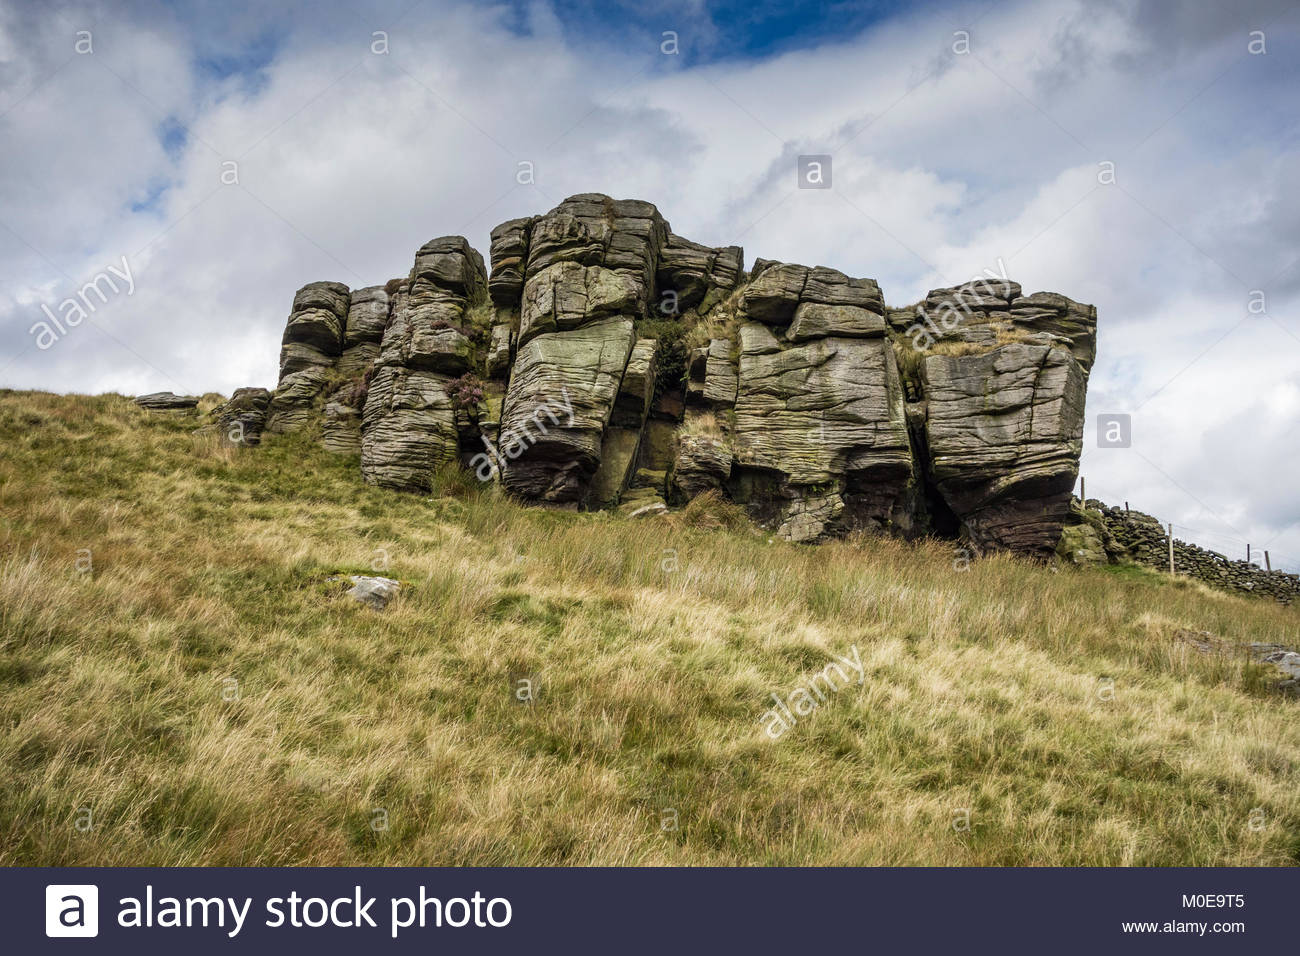 Cold Stone in the Forest of Bowland in Lancashire, an Area of Outstanding Natural Beauty (AONB) - Stock Image